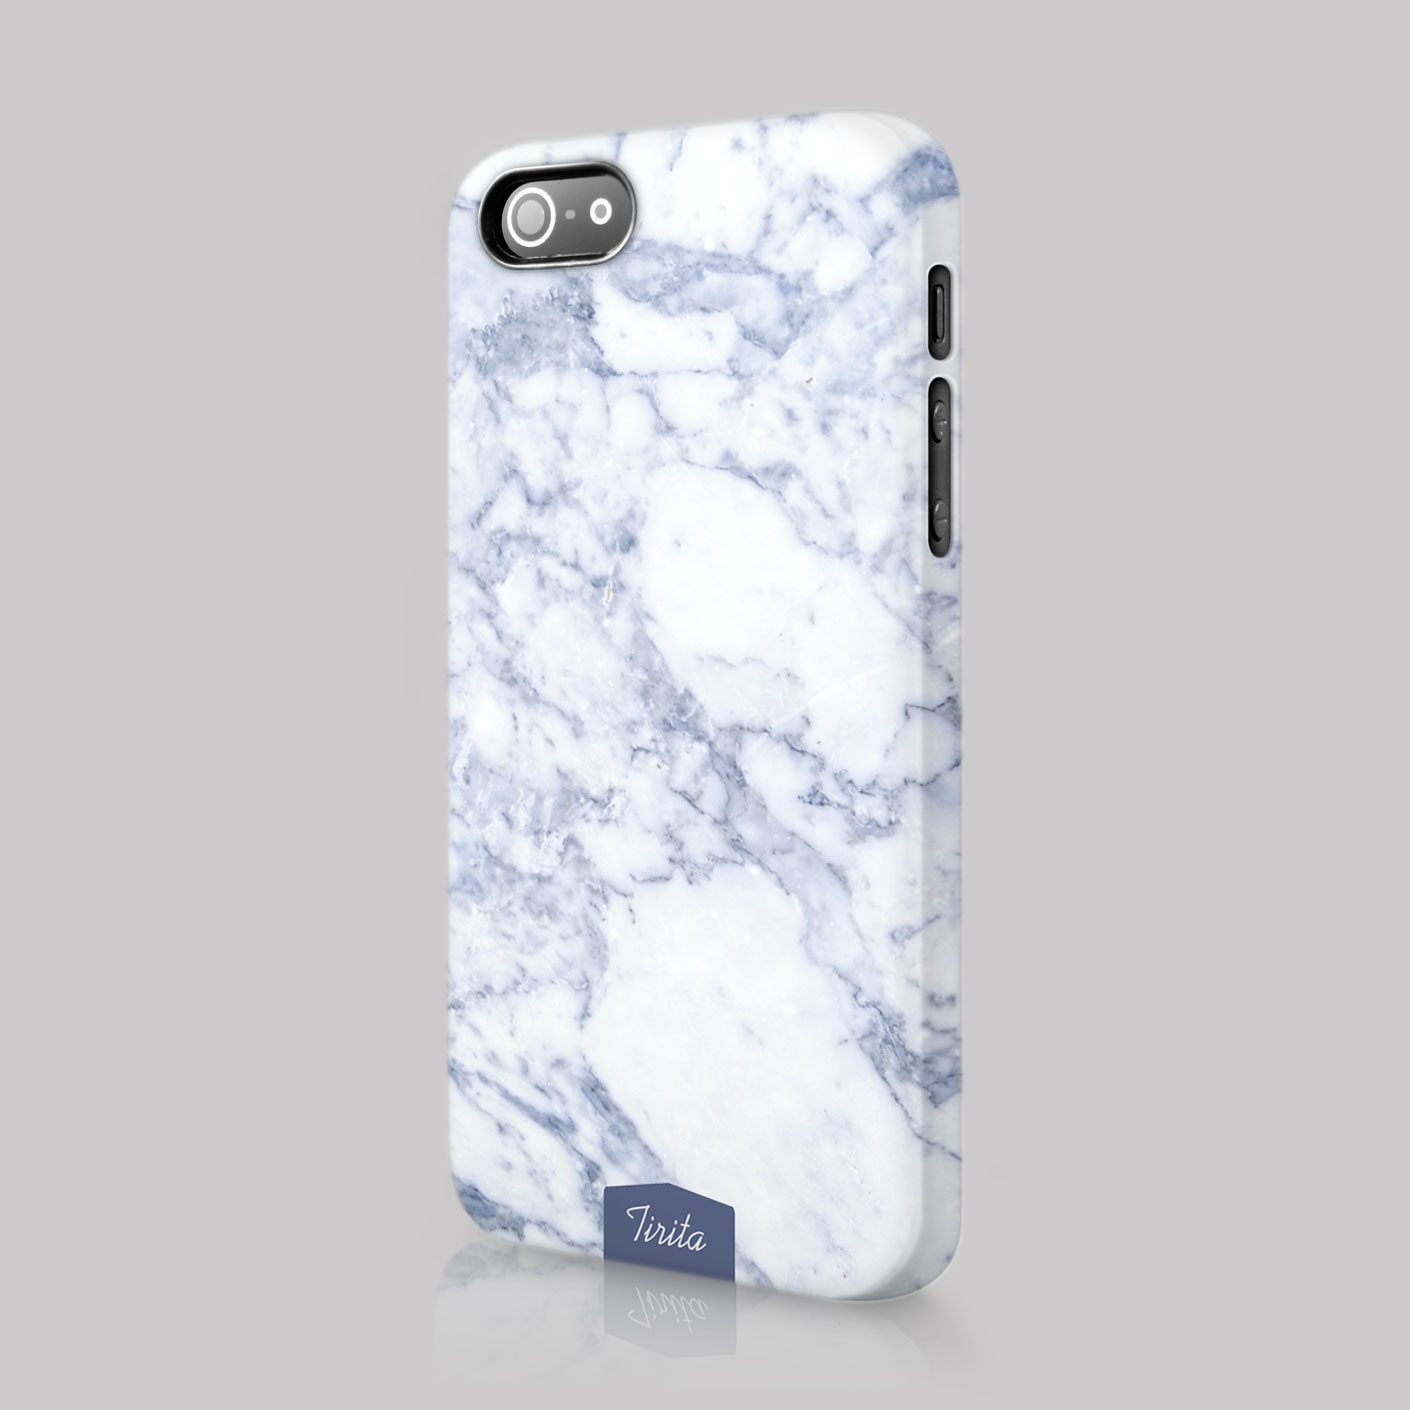 Tirita Marble Effect Look Alike Rock Pattern Case Hard Cover For Iphone